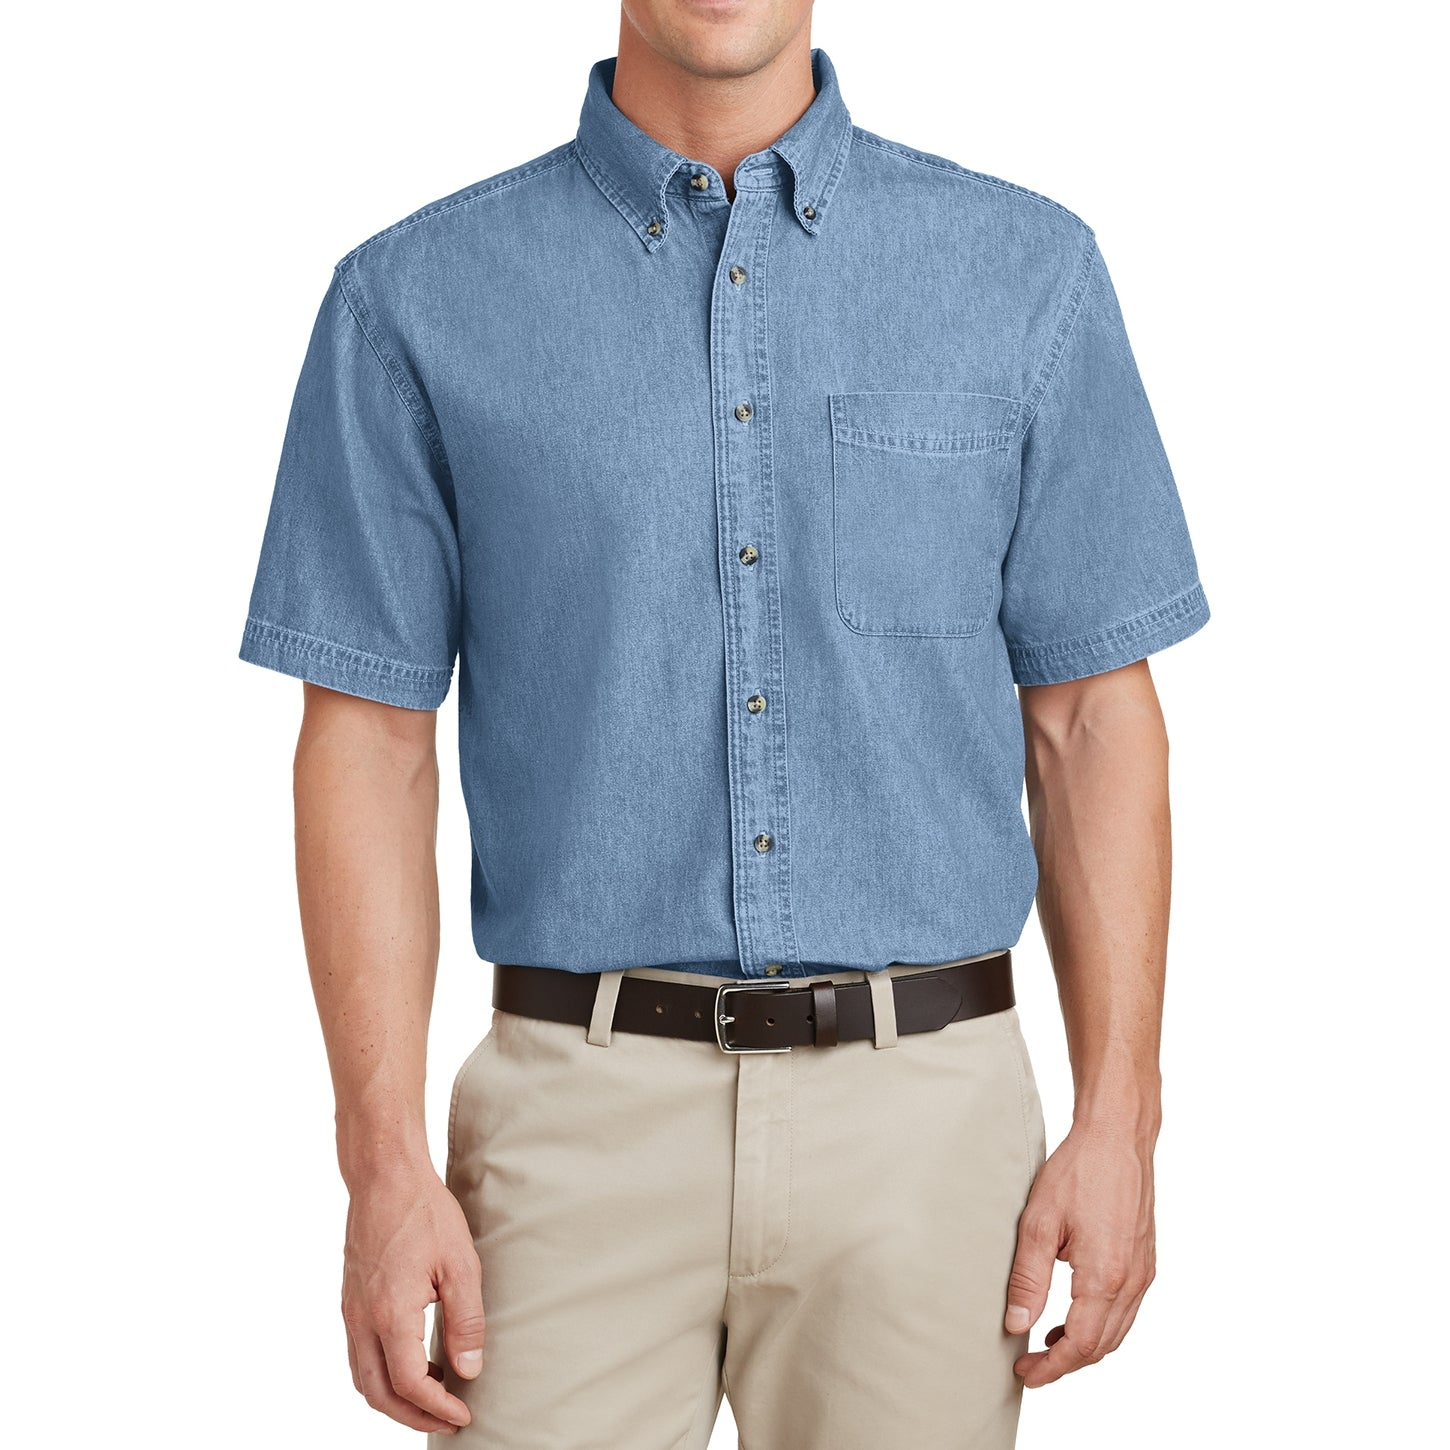 Mafoose Men's Short Sleeve Value Denim Shirt Faded Blue-Front